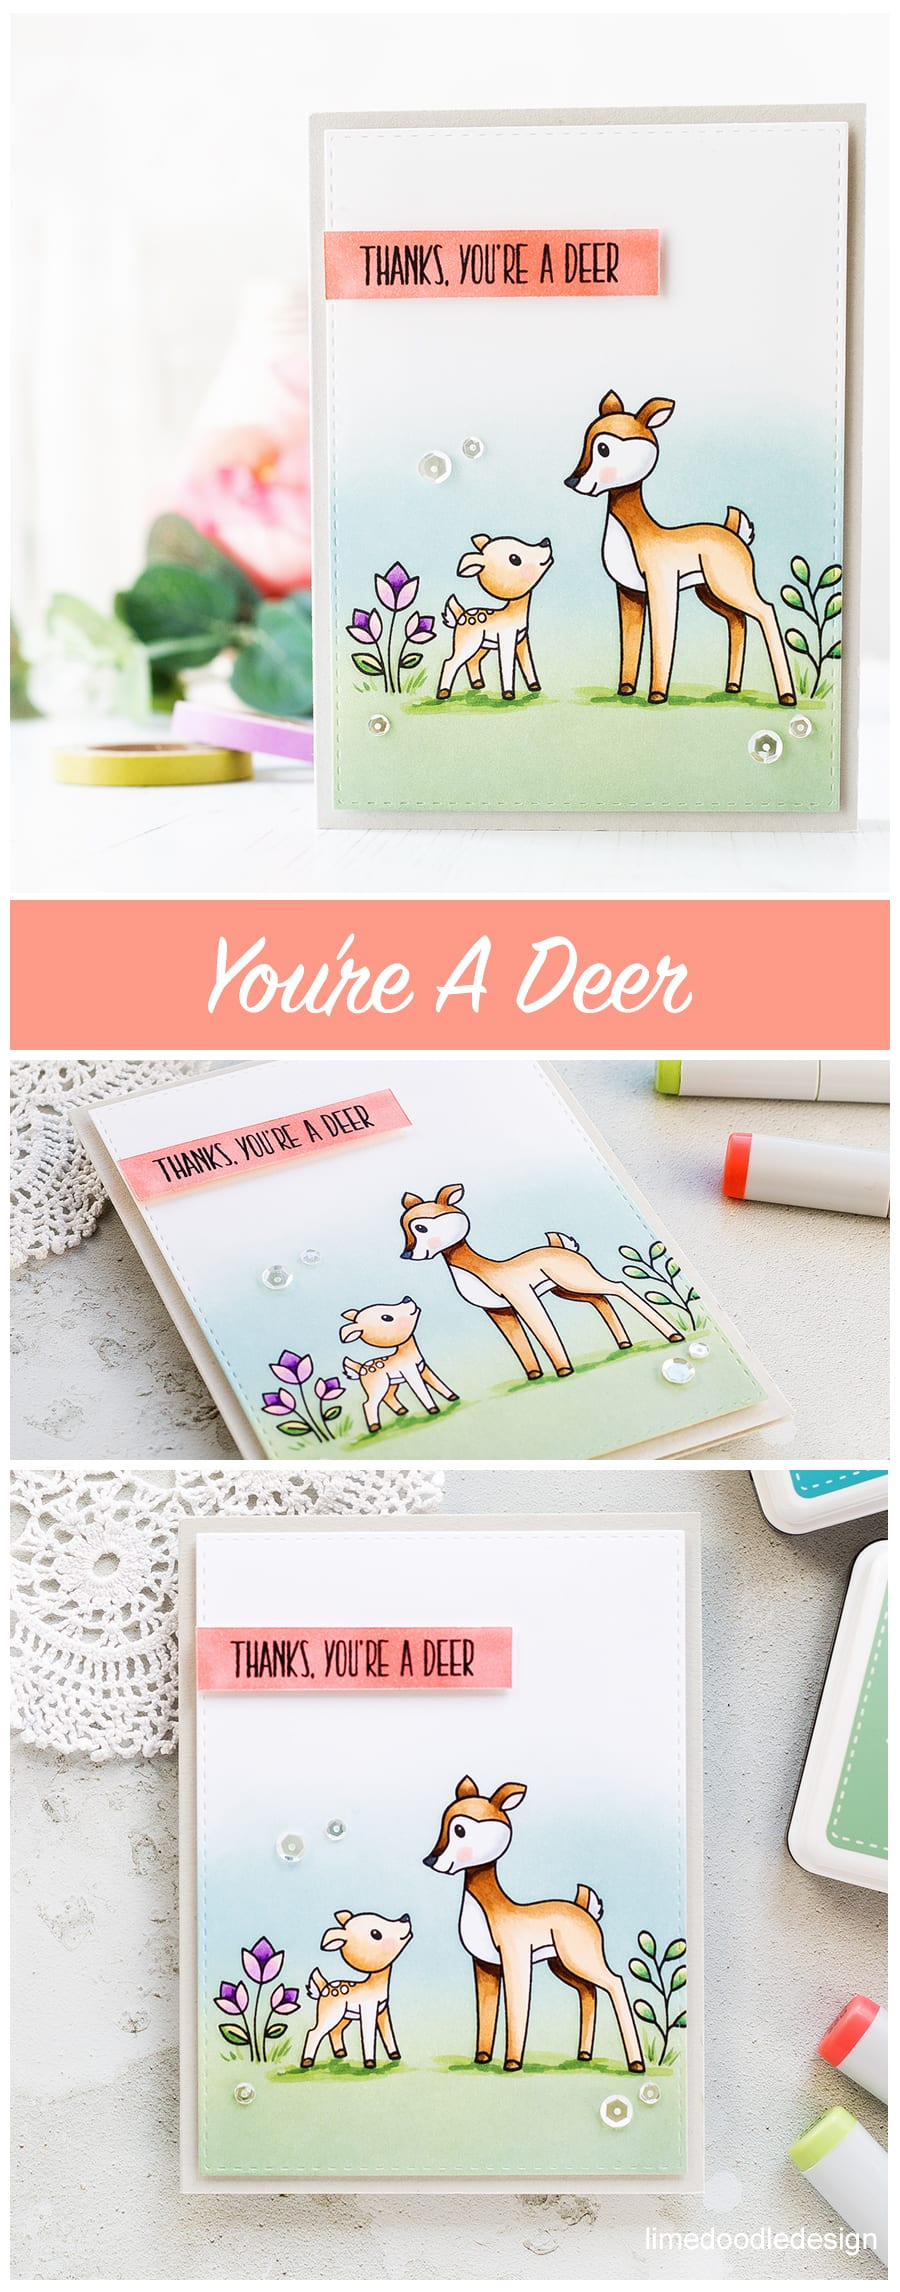 Thanks, You're A Deer card by Debby Hughes using the new Mothers Fathers Flowers release from Simon Says Stamp. Find out more by clicking on the following link: https://limedoodledesign.com/2017/04/mothers-fathers-flowers-sss-release-hop/